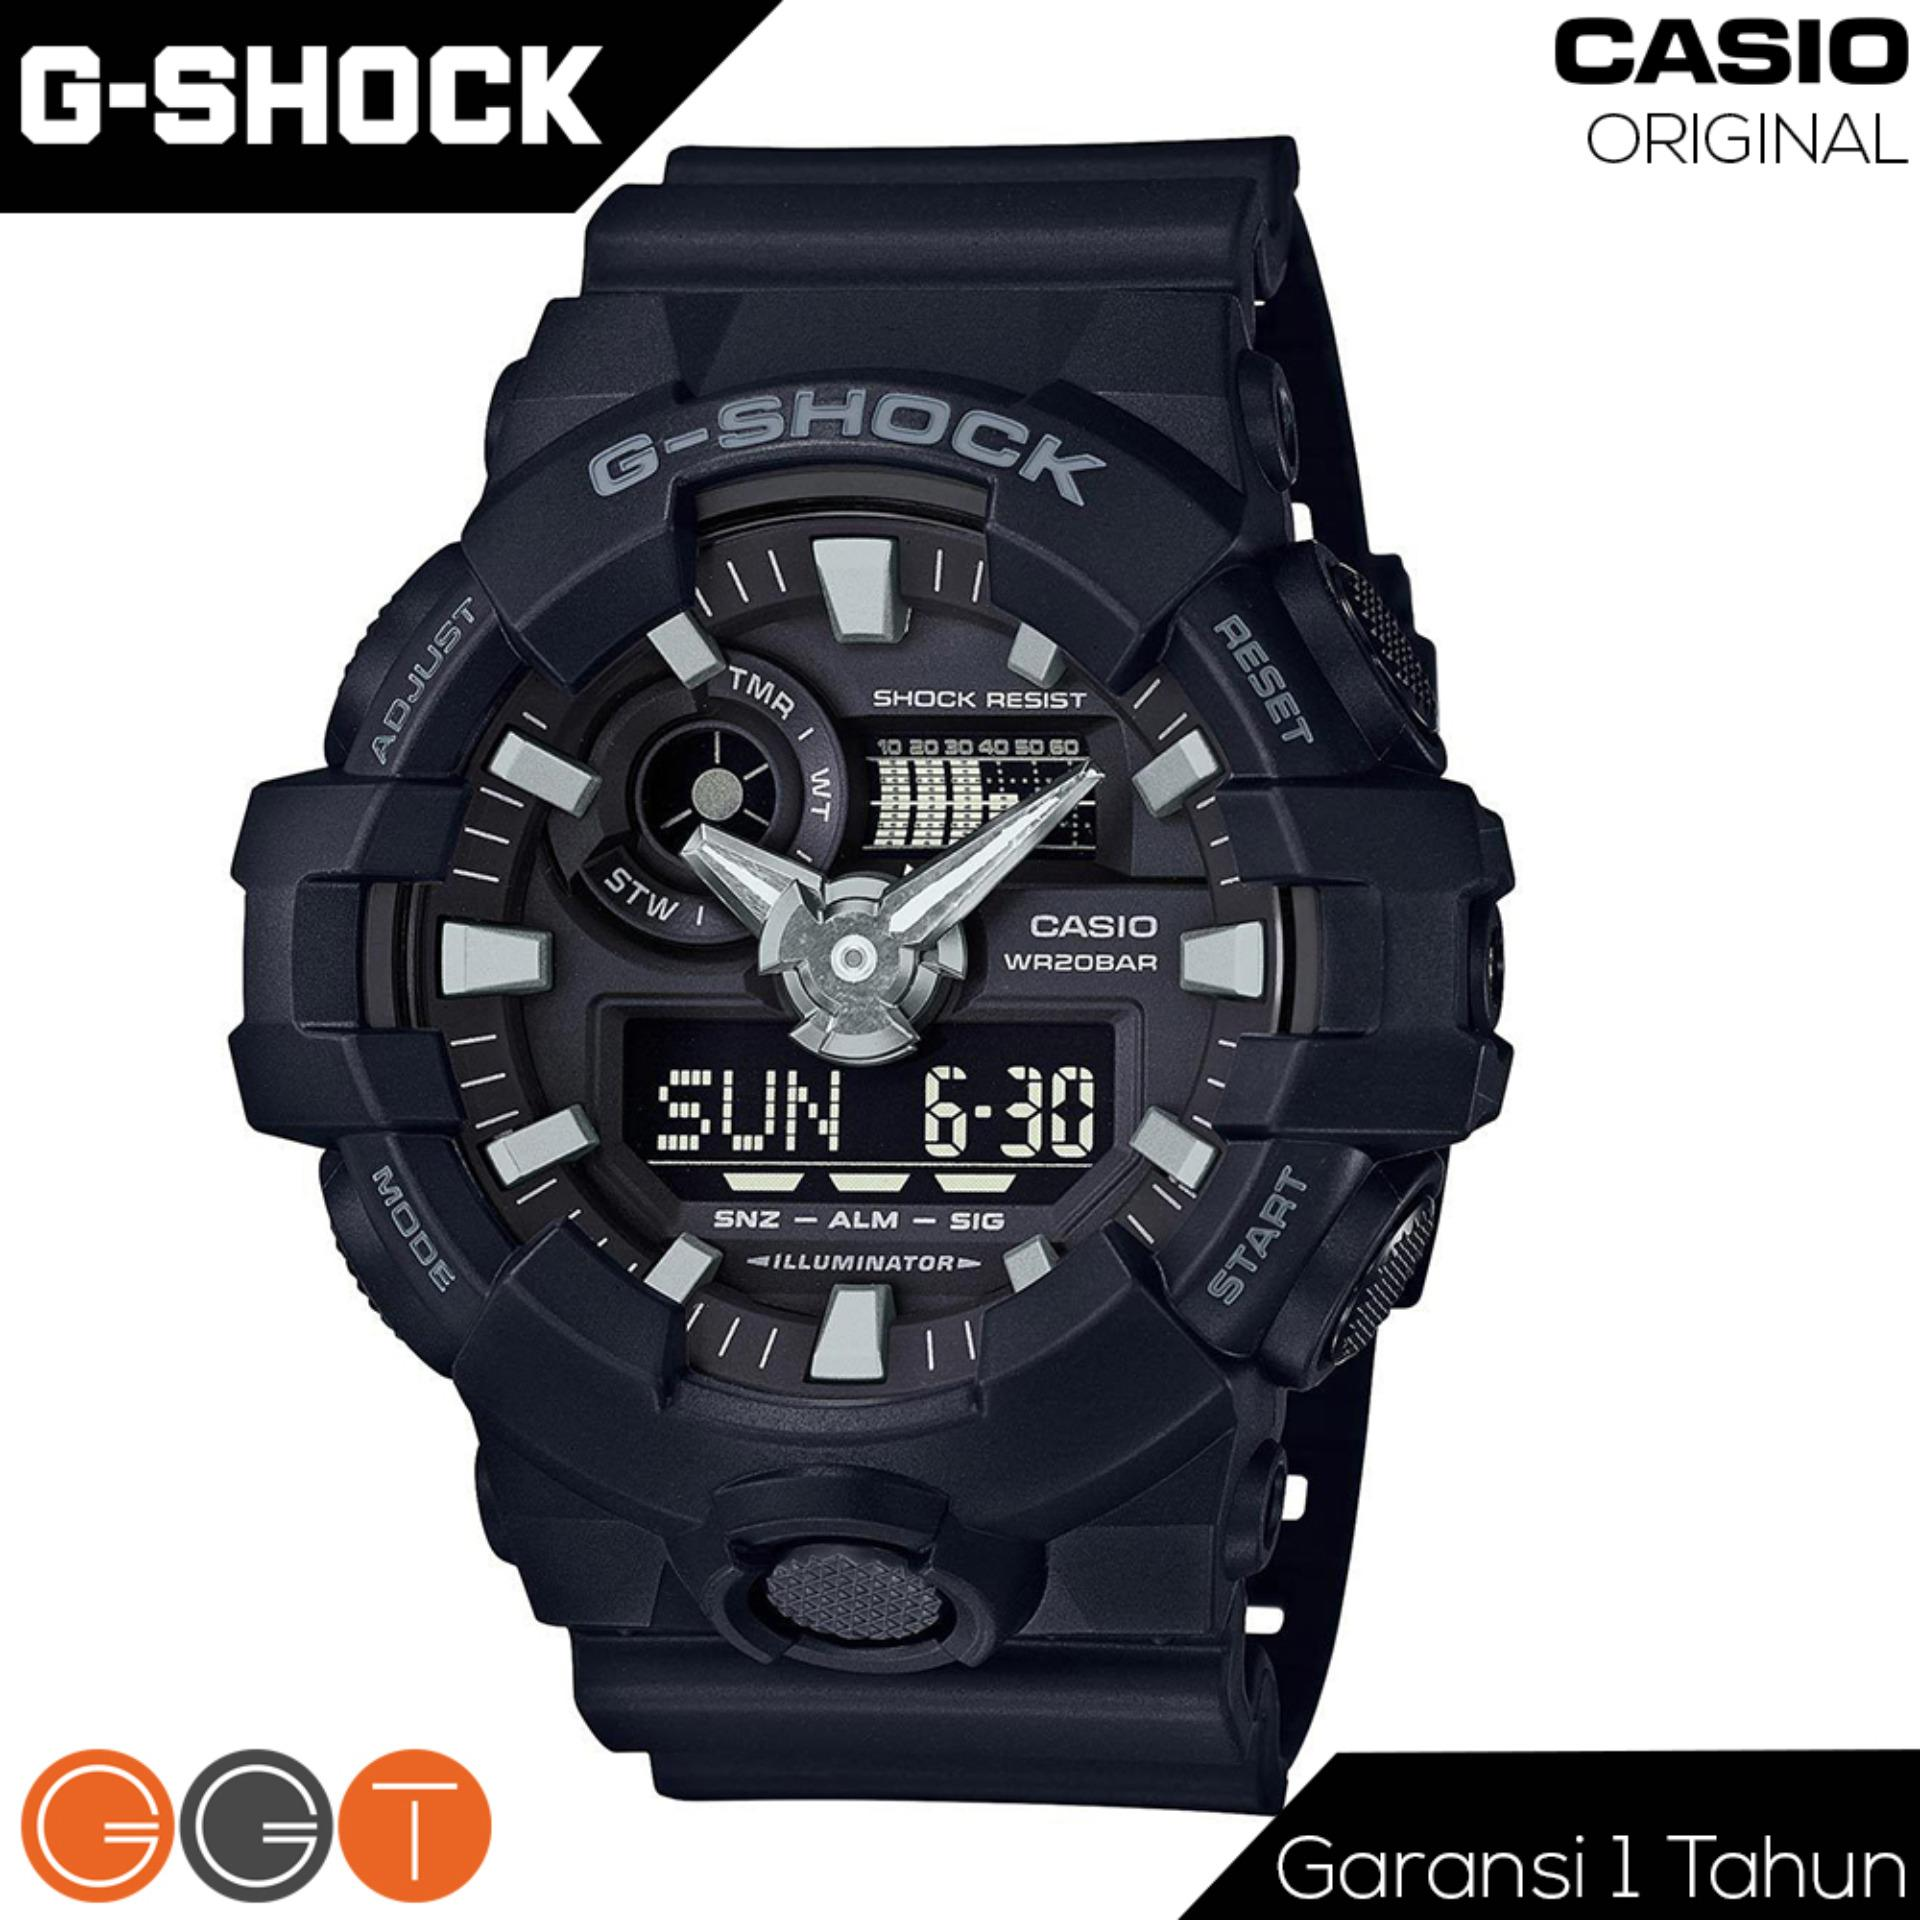 Beli Casio G Shock Dual Time Resin Starp Quartz Movement Jam Tangan Pria Ga 700 1B Full Black Cicilan